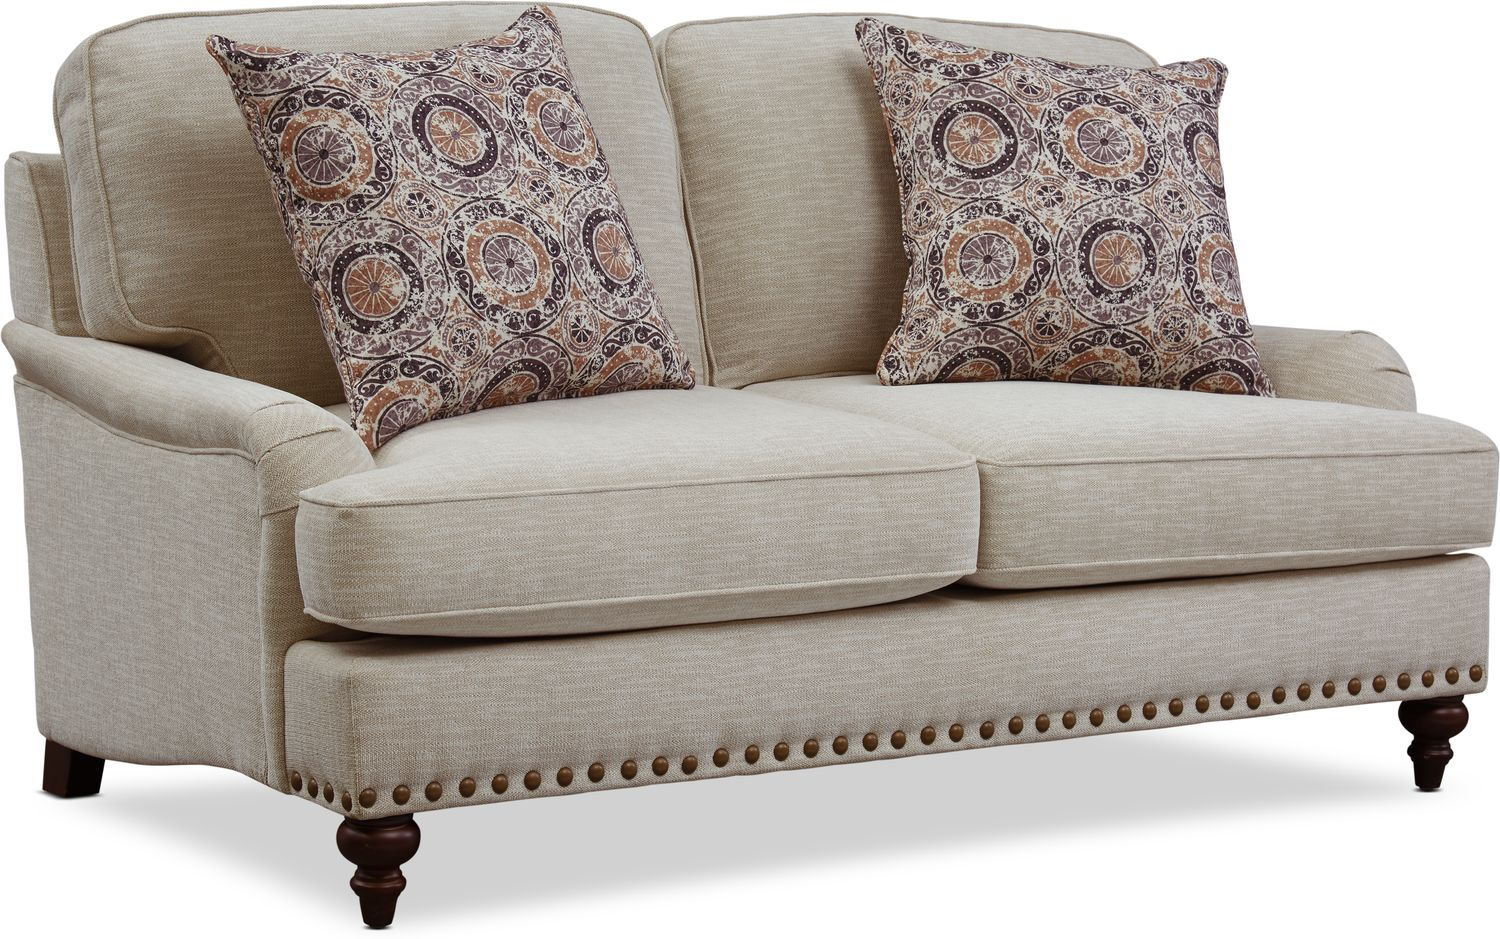 Living Room Furniture - London Loveseat